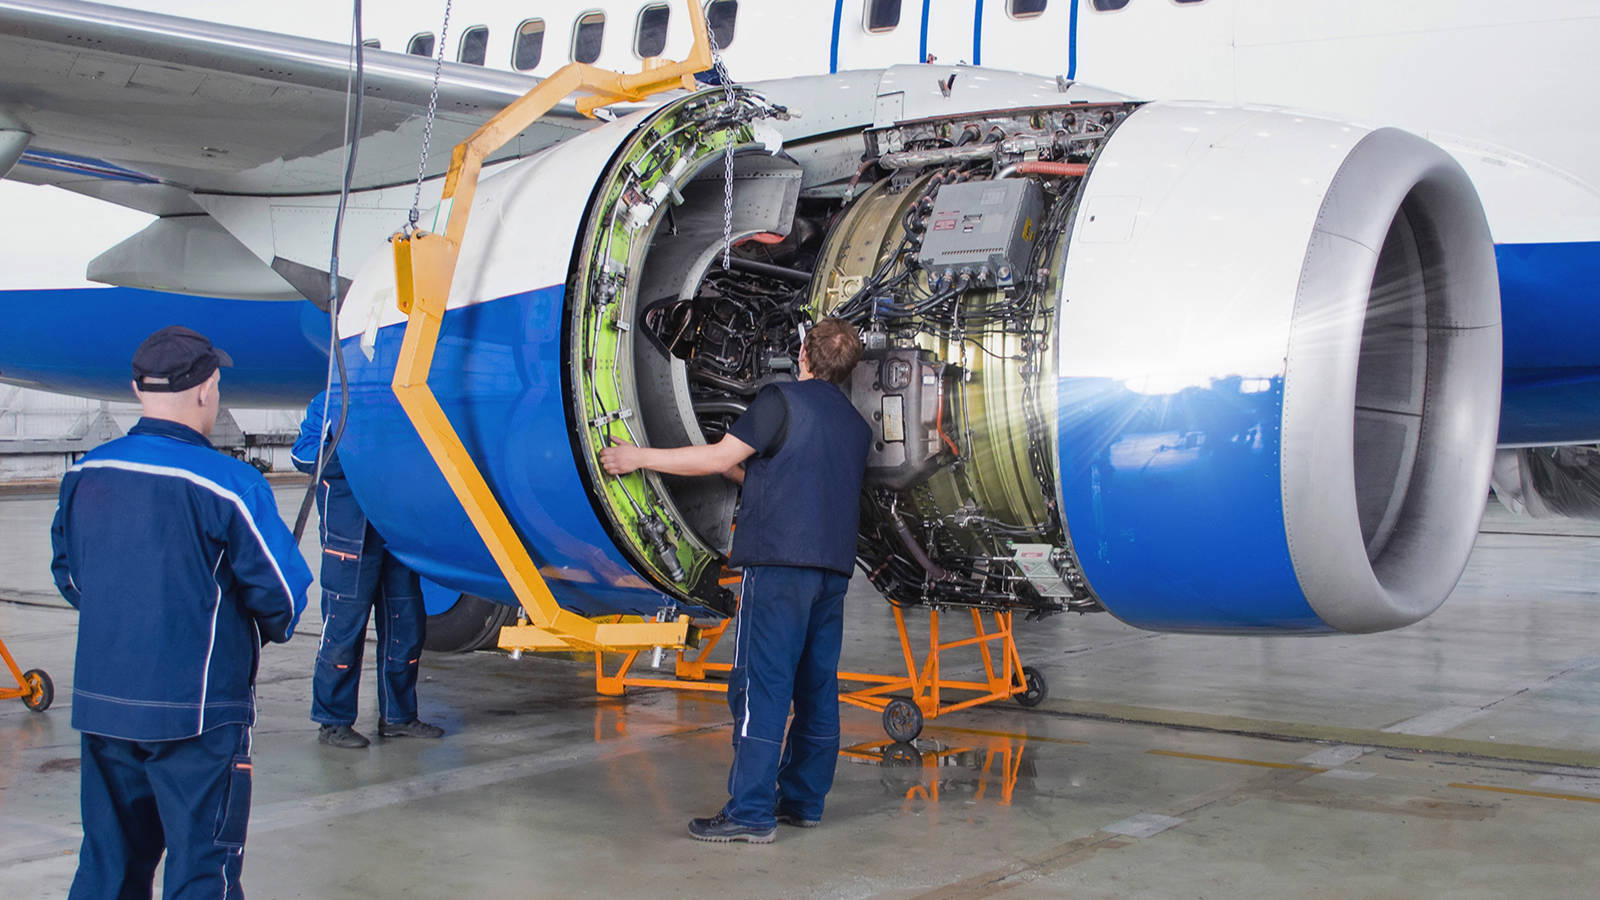 Two workers replacing an airplane engine with a device that required careful tool building measurement